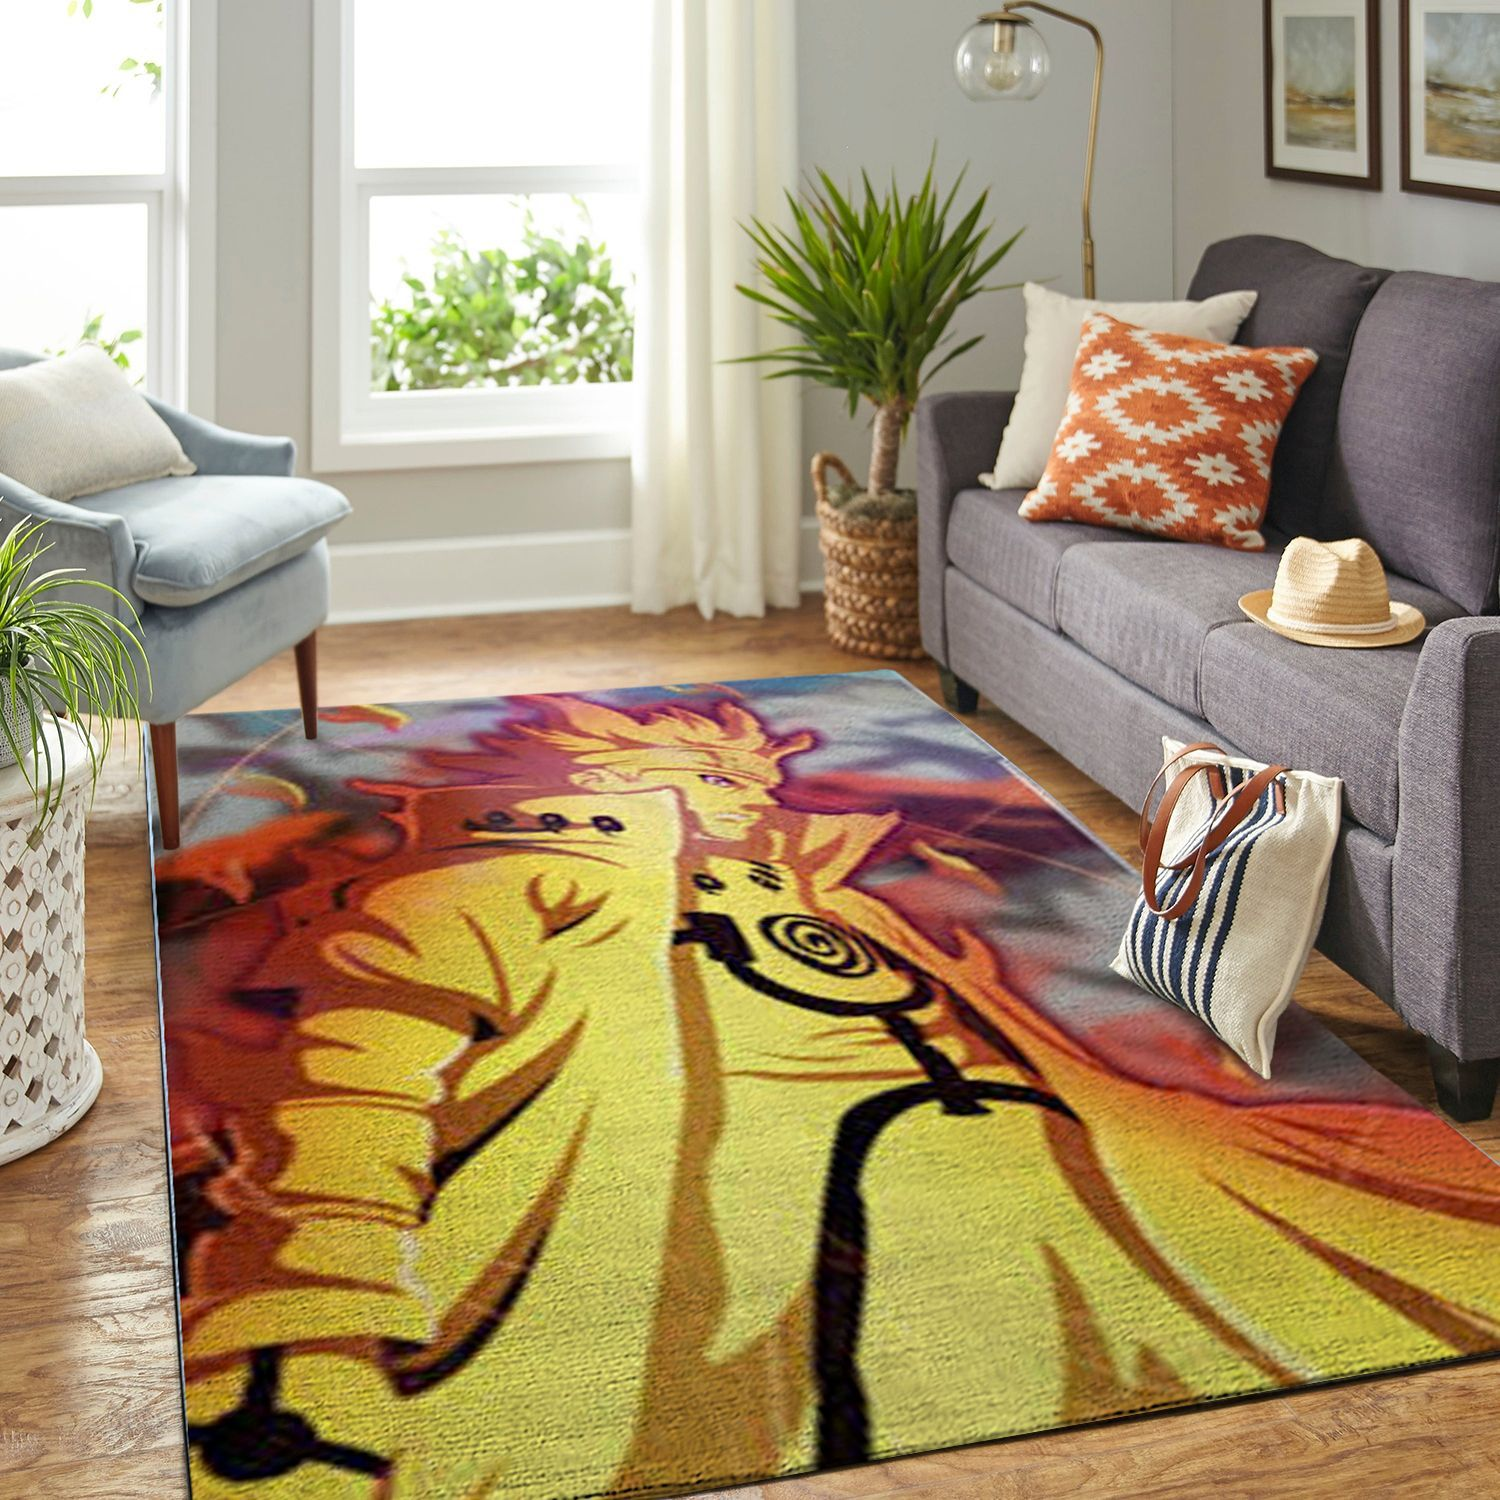 Amazon Naruto Themed Living Room Area No6381 Rug